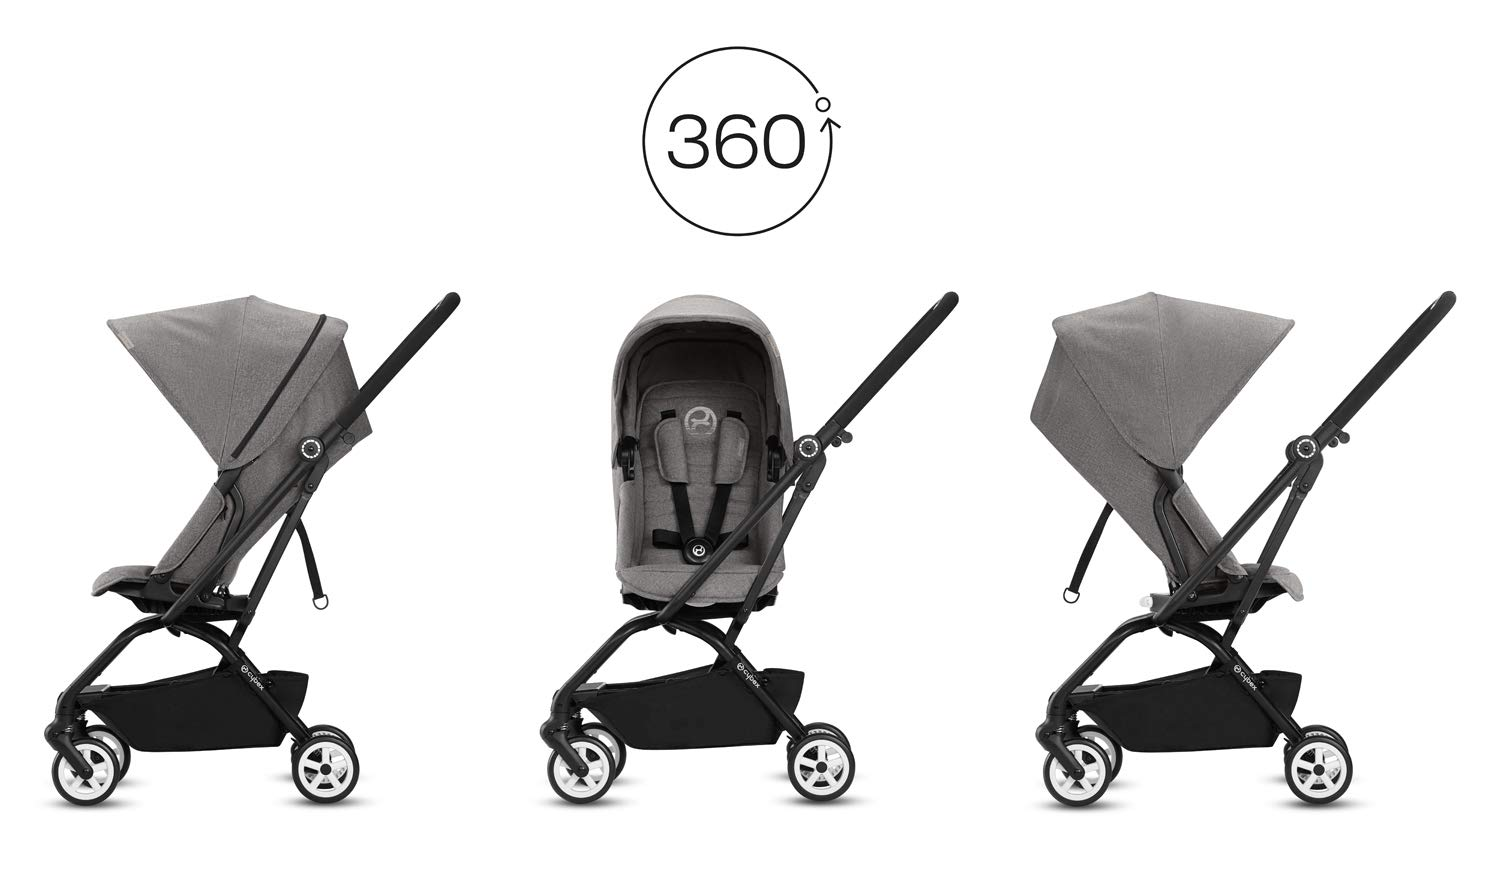 CYBEX Gold Eezy S Twist Compact Pushchair, 360° Rotatable Seat Unit, Ultra-Compact, From Birth to 17 kg (approx. 4 years), Denim Blue Cybex Sturdy, High-quality Compact Pushchair for newborns up to approx. 17 kg (approx. 4 years) with unique rotatable seat unit - Including rain cover for optimum use in all weather conditions Quick and easy change of direction with 360° rotatable seat unit, Comfortable sitting position thanks to stepless adjustable reclining backrest with lie-flat position, Puncture proof tyres and all-terrain wheel suspension Simple folding with one-hand folding mechanism for compact travel size (LxWxH: 26 x 45 x 56 cm), Extremely manoeuvrable due to narrow wheelbase, Can also be used as 3-in-1 travel system with separately available CYBEX and gb infant carriers and the baby cocoon S (sold separately) 2